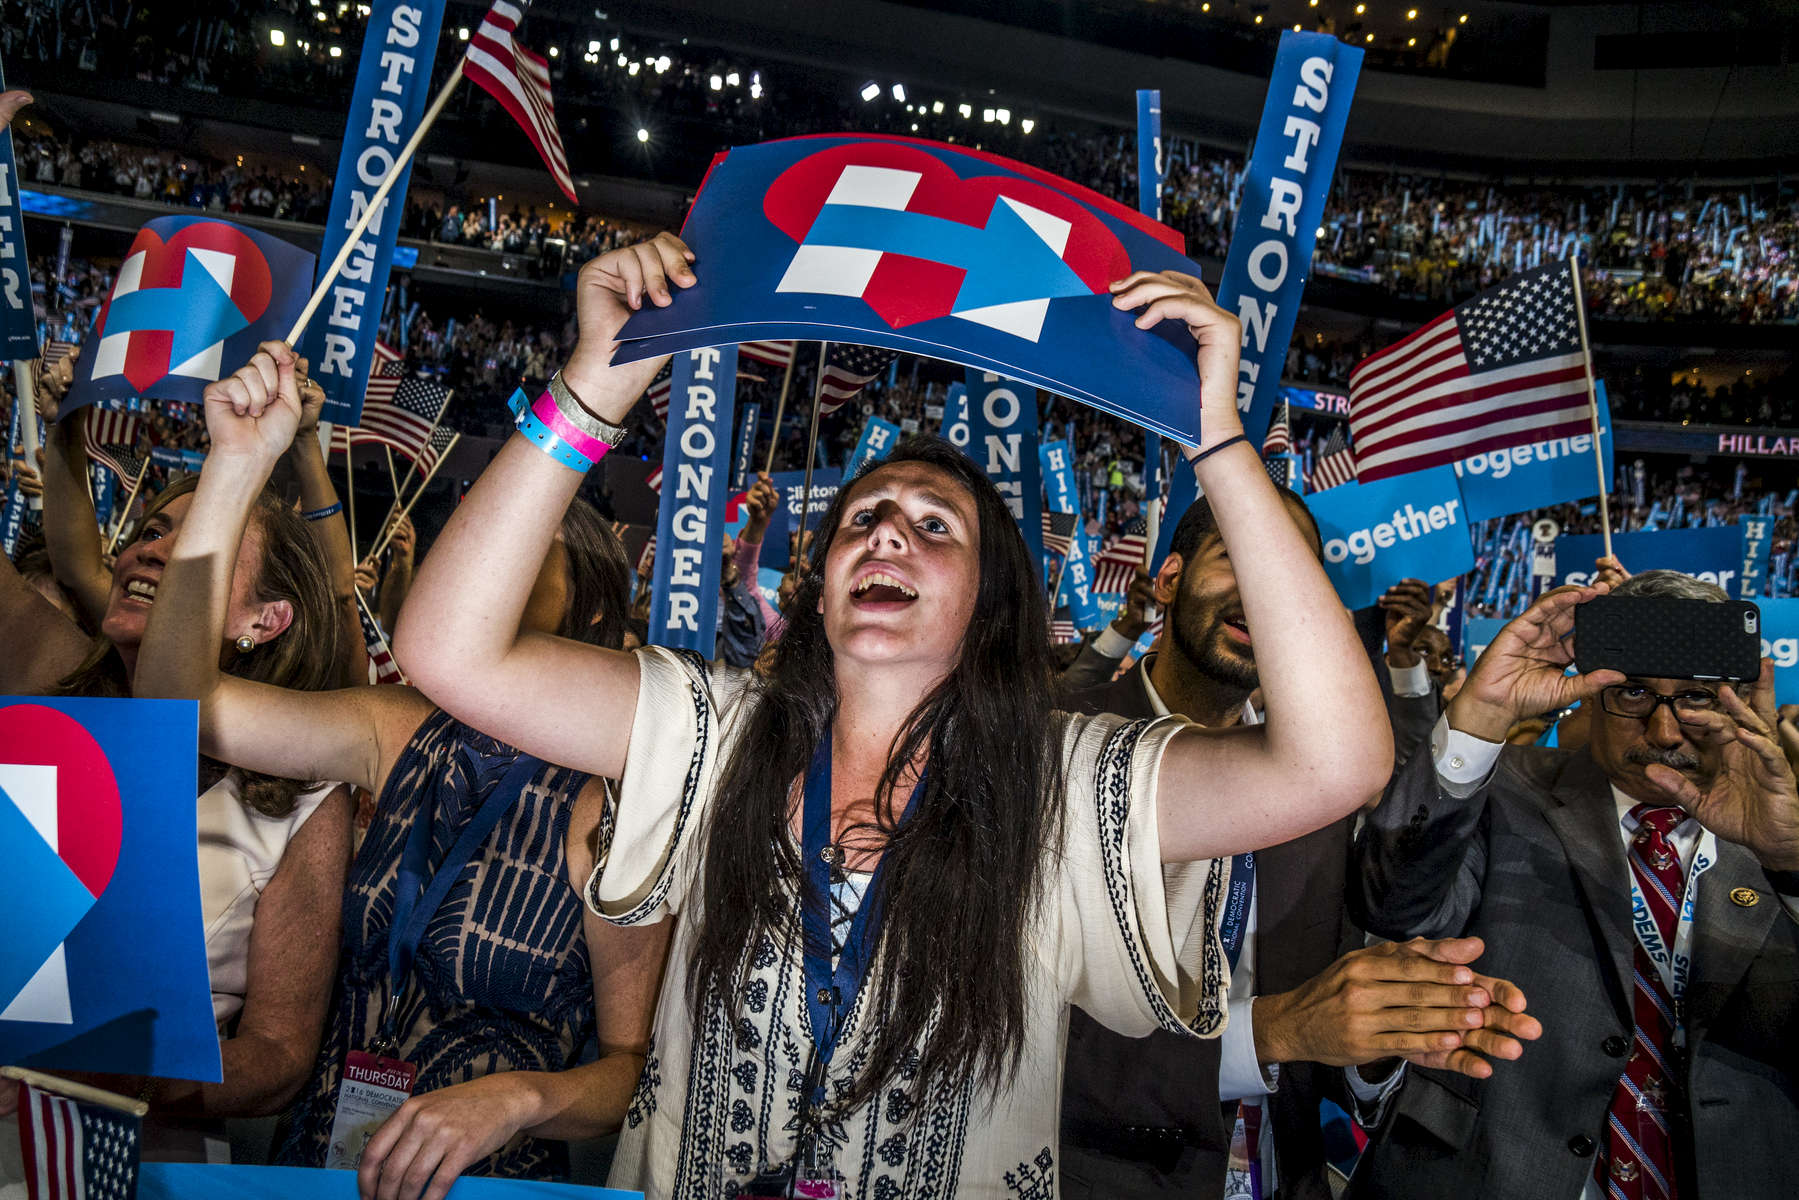 Philadelphia, PA - July 28, 2016: Scenes from the Democratic National Convention in Philadelphia, PA.